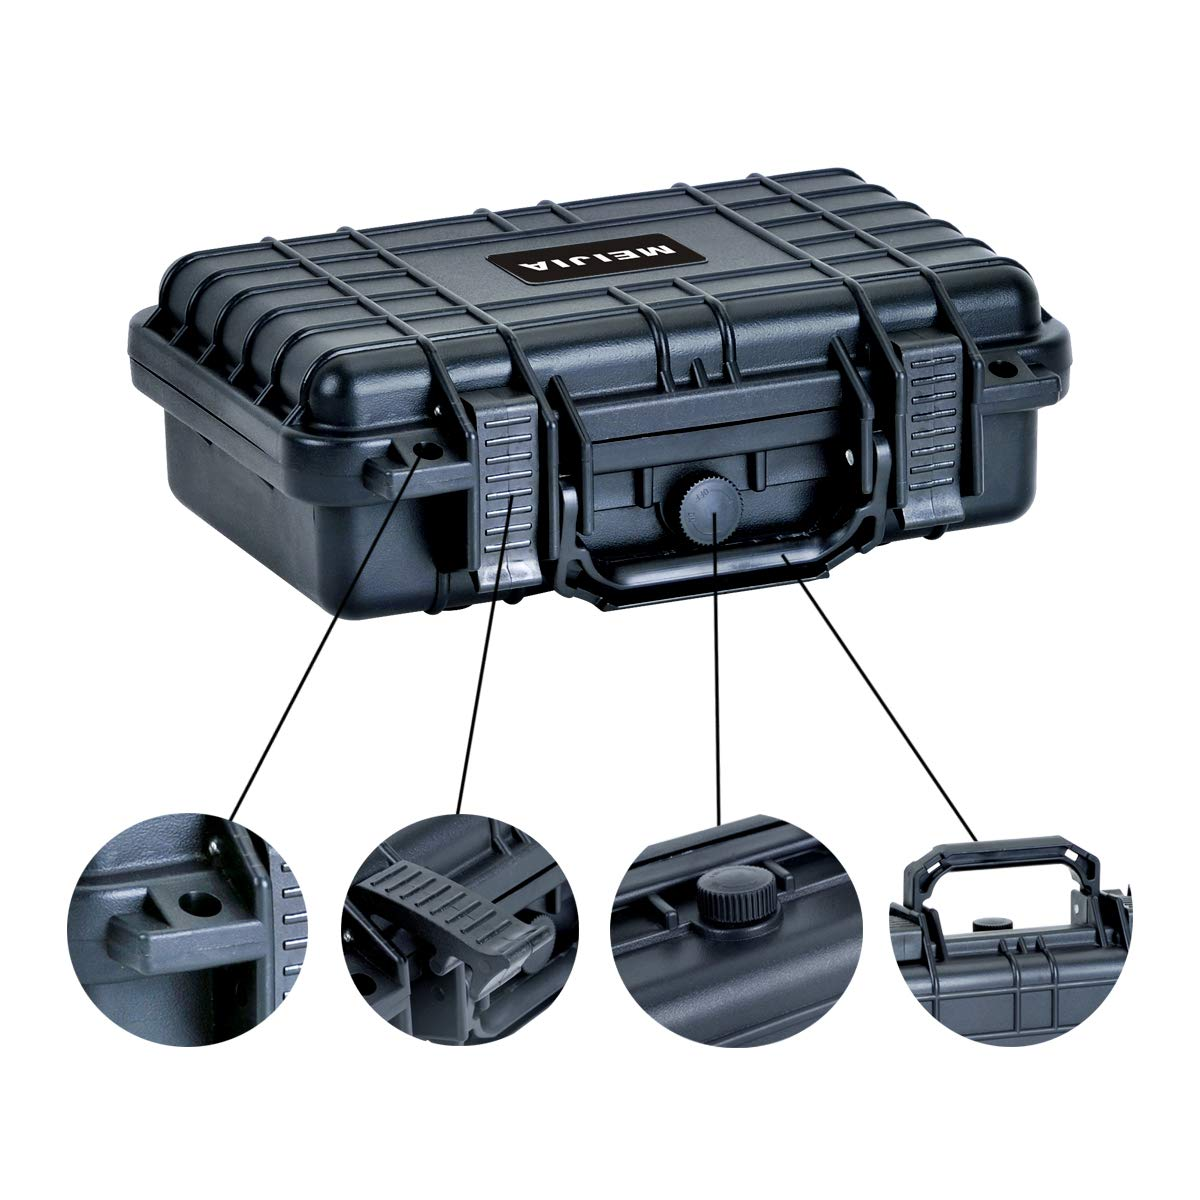 Elegant Black MIEJIA Portable All Weather Waterproof Camera Case with Foam,Fit Use of Drones,Camera,Equipments,11.65 x8.35x3.78inches